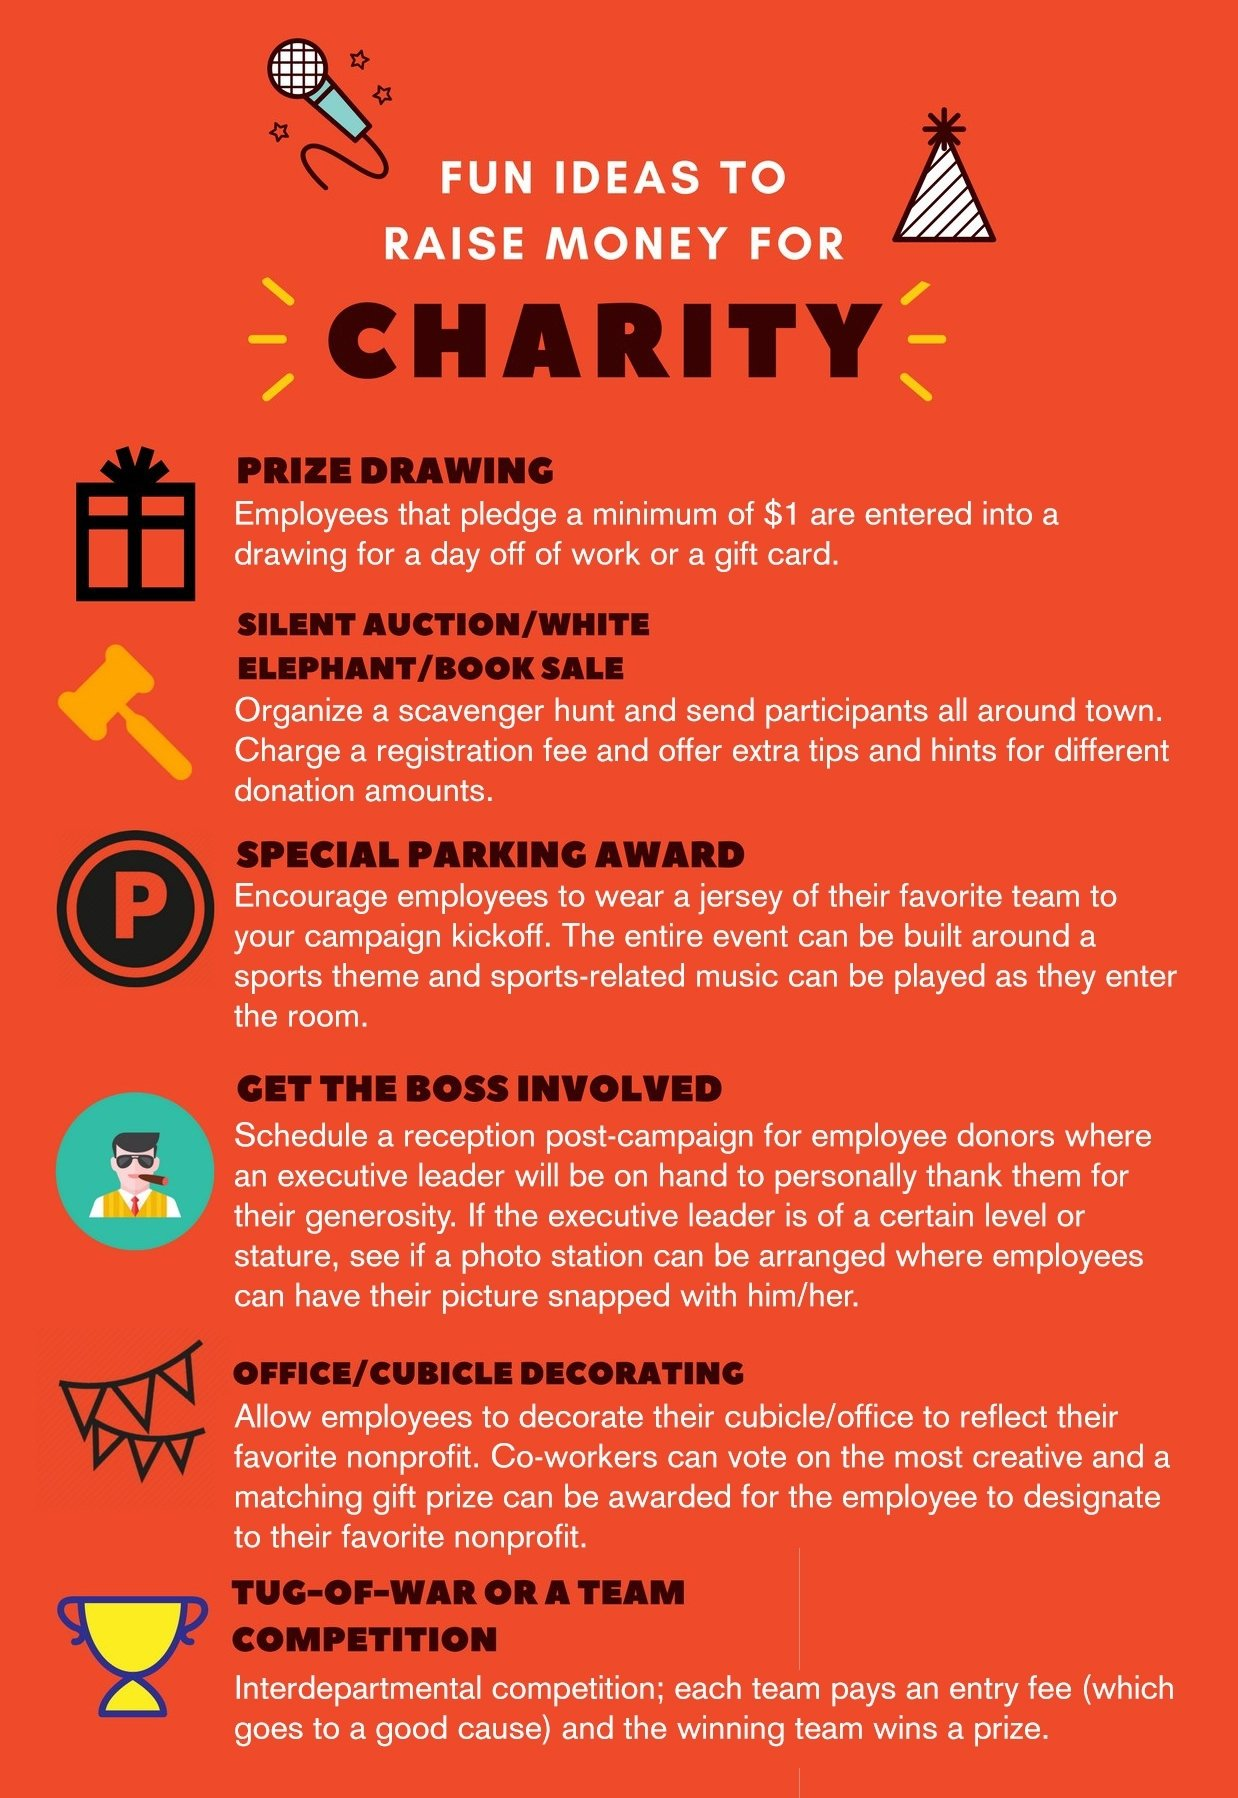 10 Attractive Fun Fundraising Ideas For Work fun ideas for engaging employees and raising money for charity 2